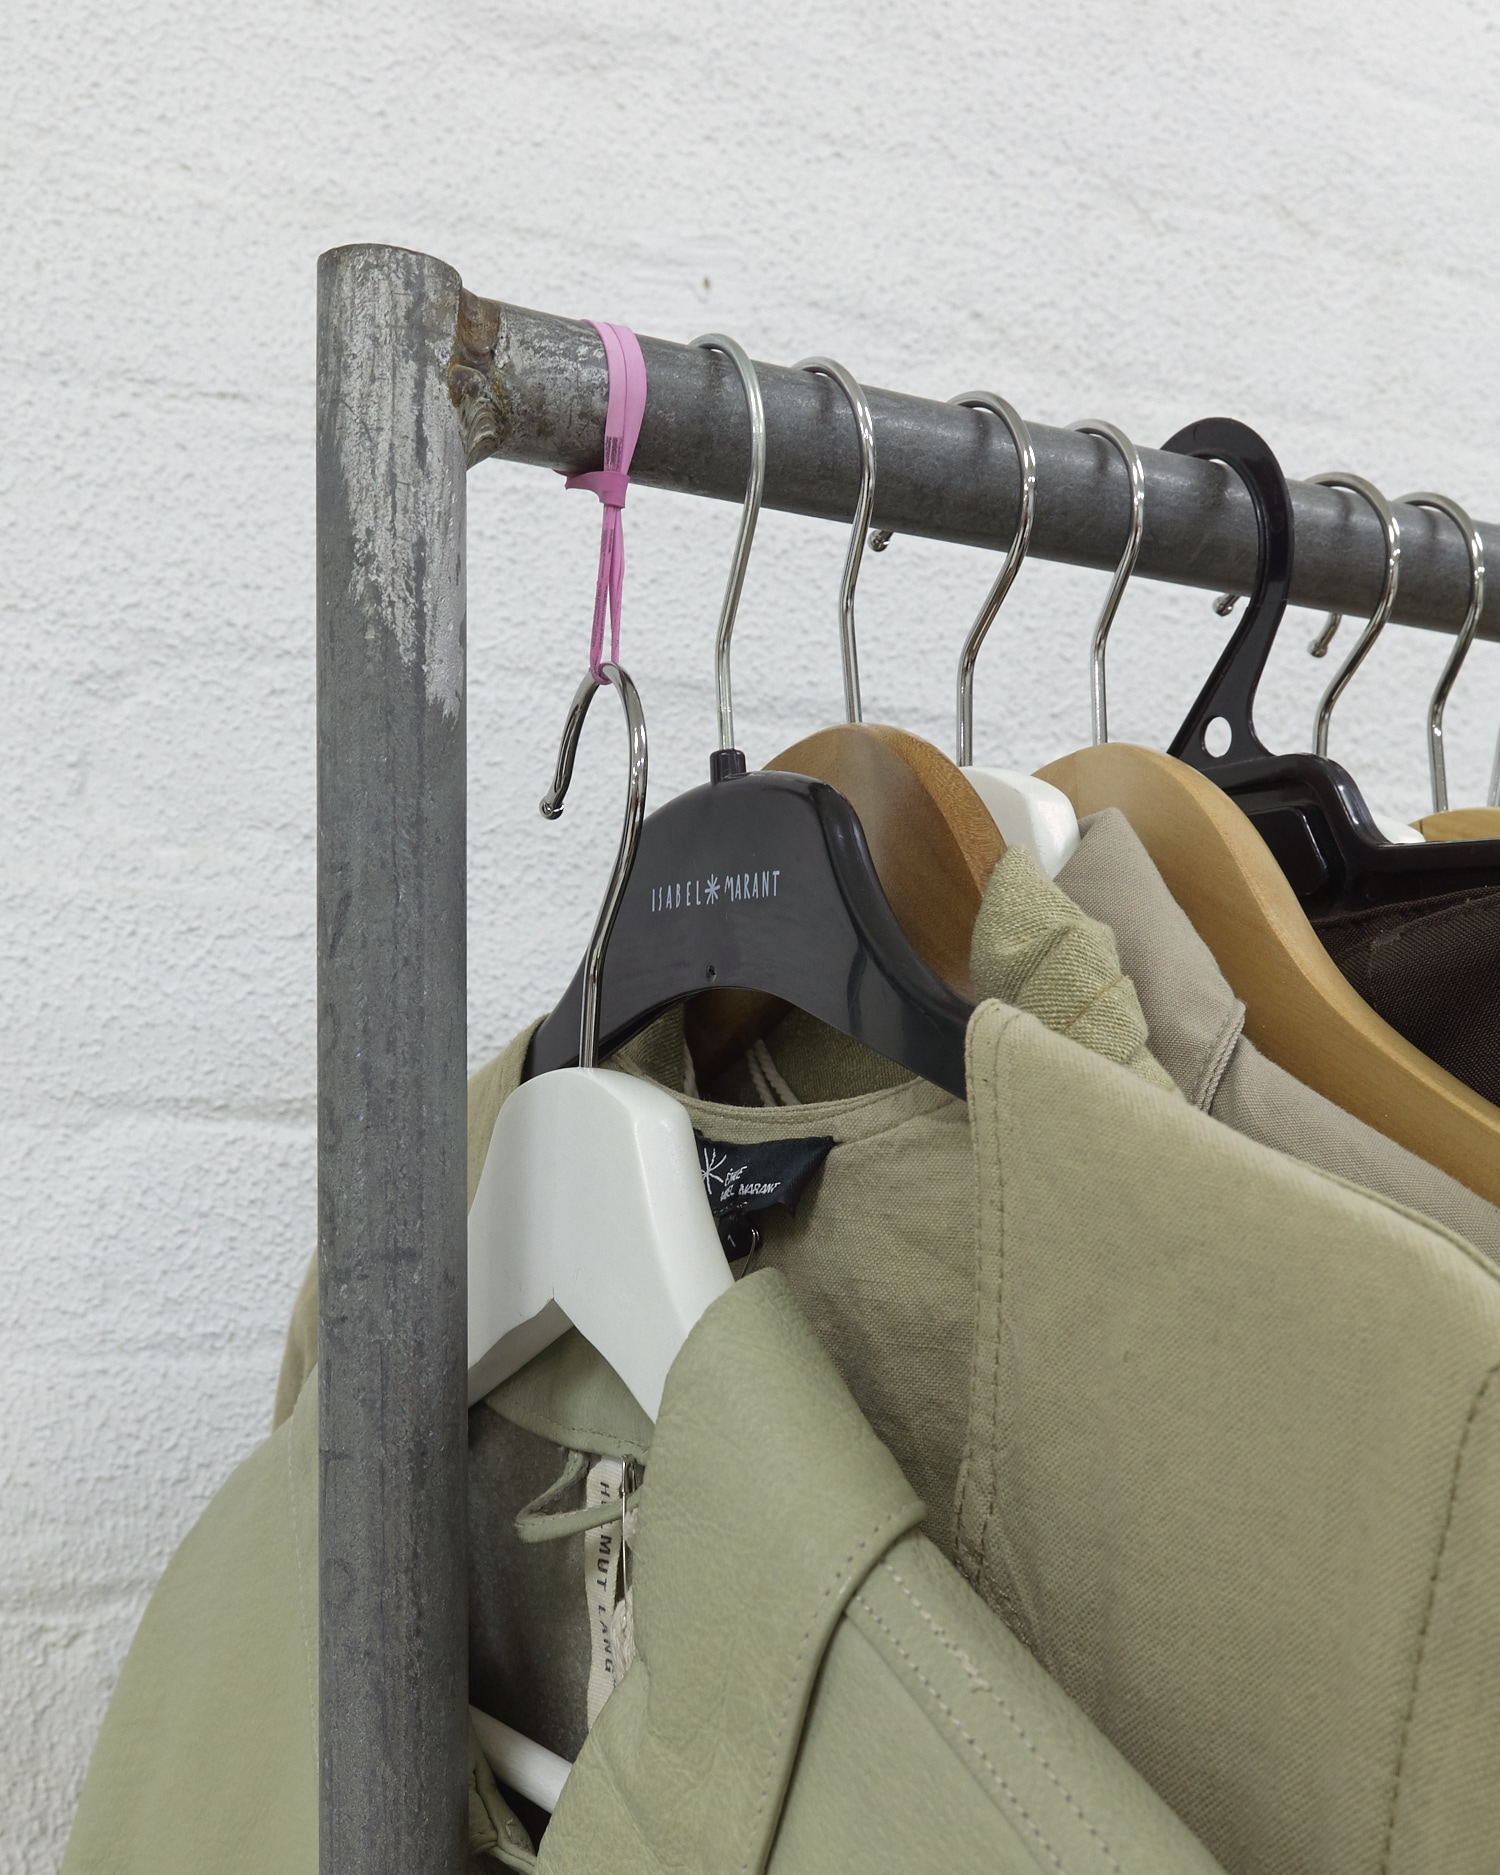 Christopher Arblaster,  Variable height hanger (depending on weight of garment hung) , 2019. Wood, metal, rubber band.